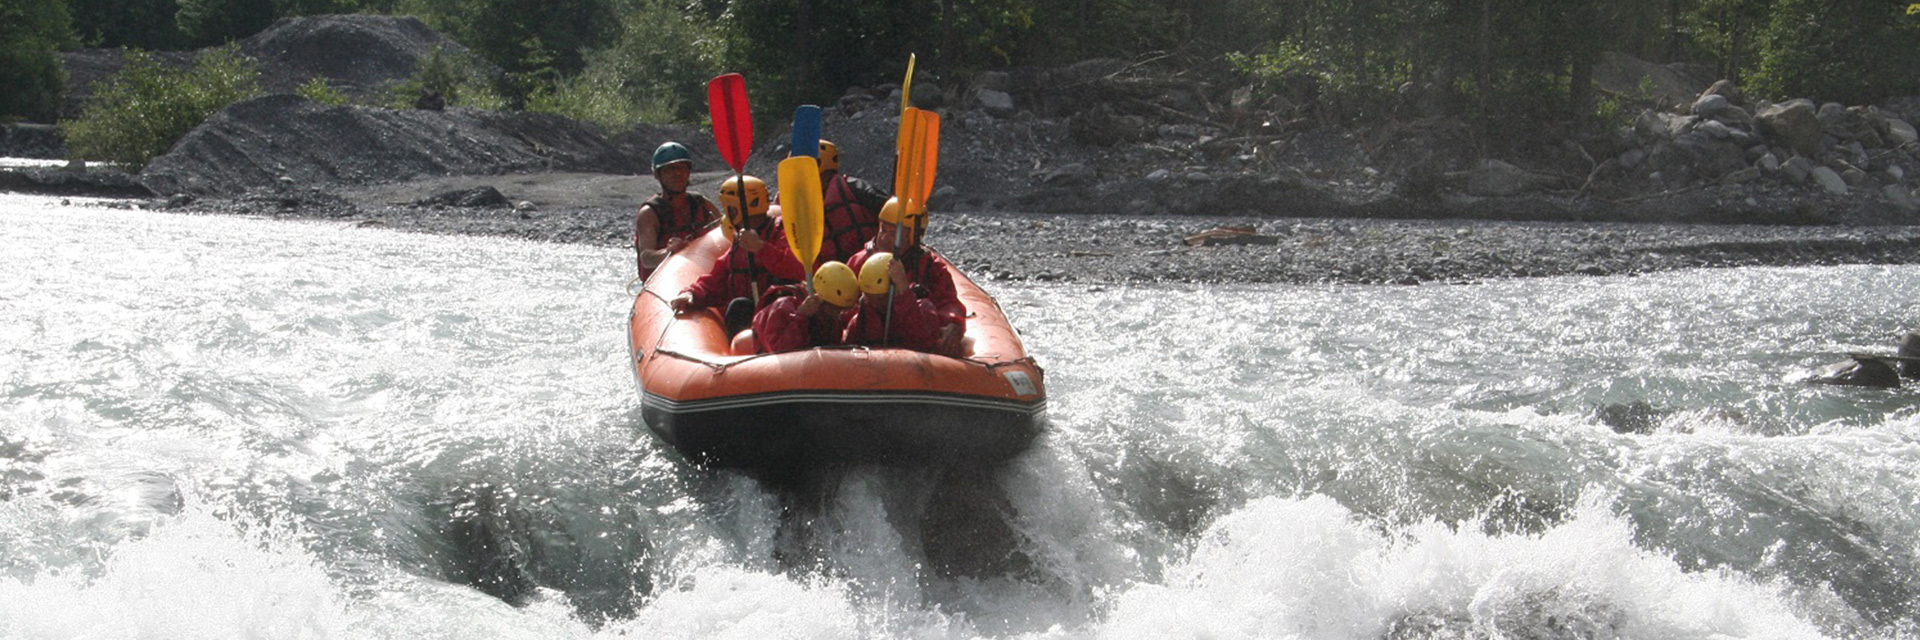 salvagny-rafting